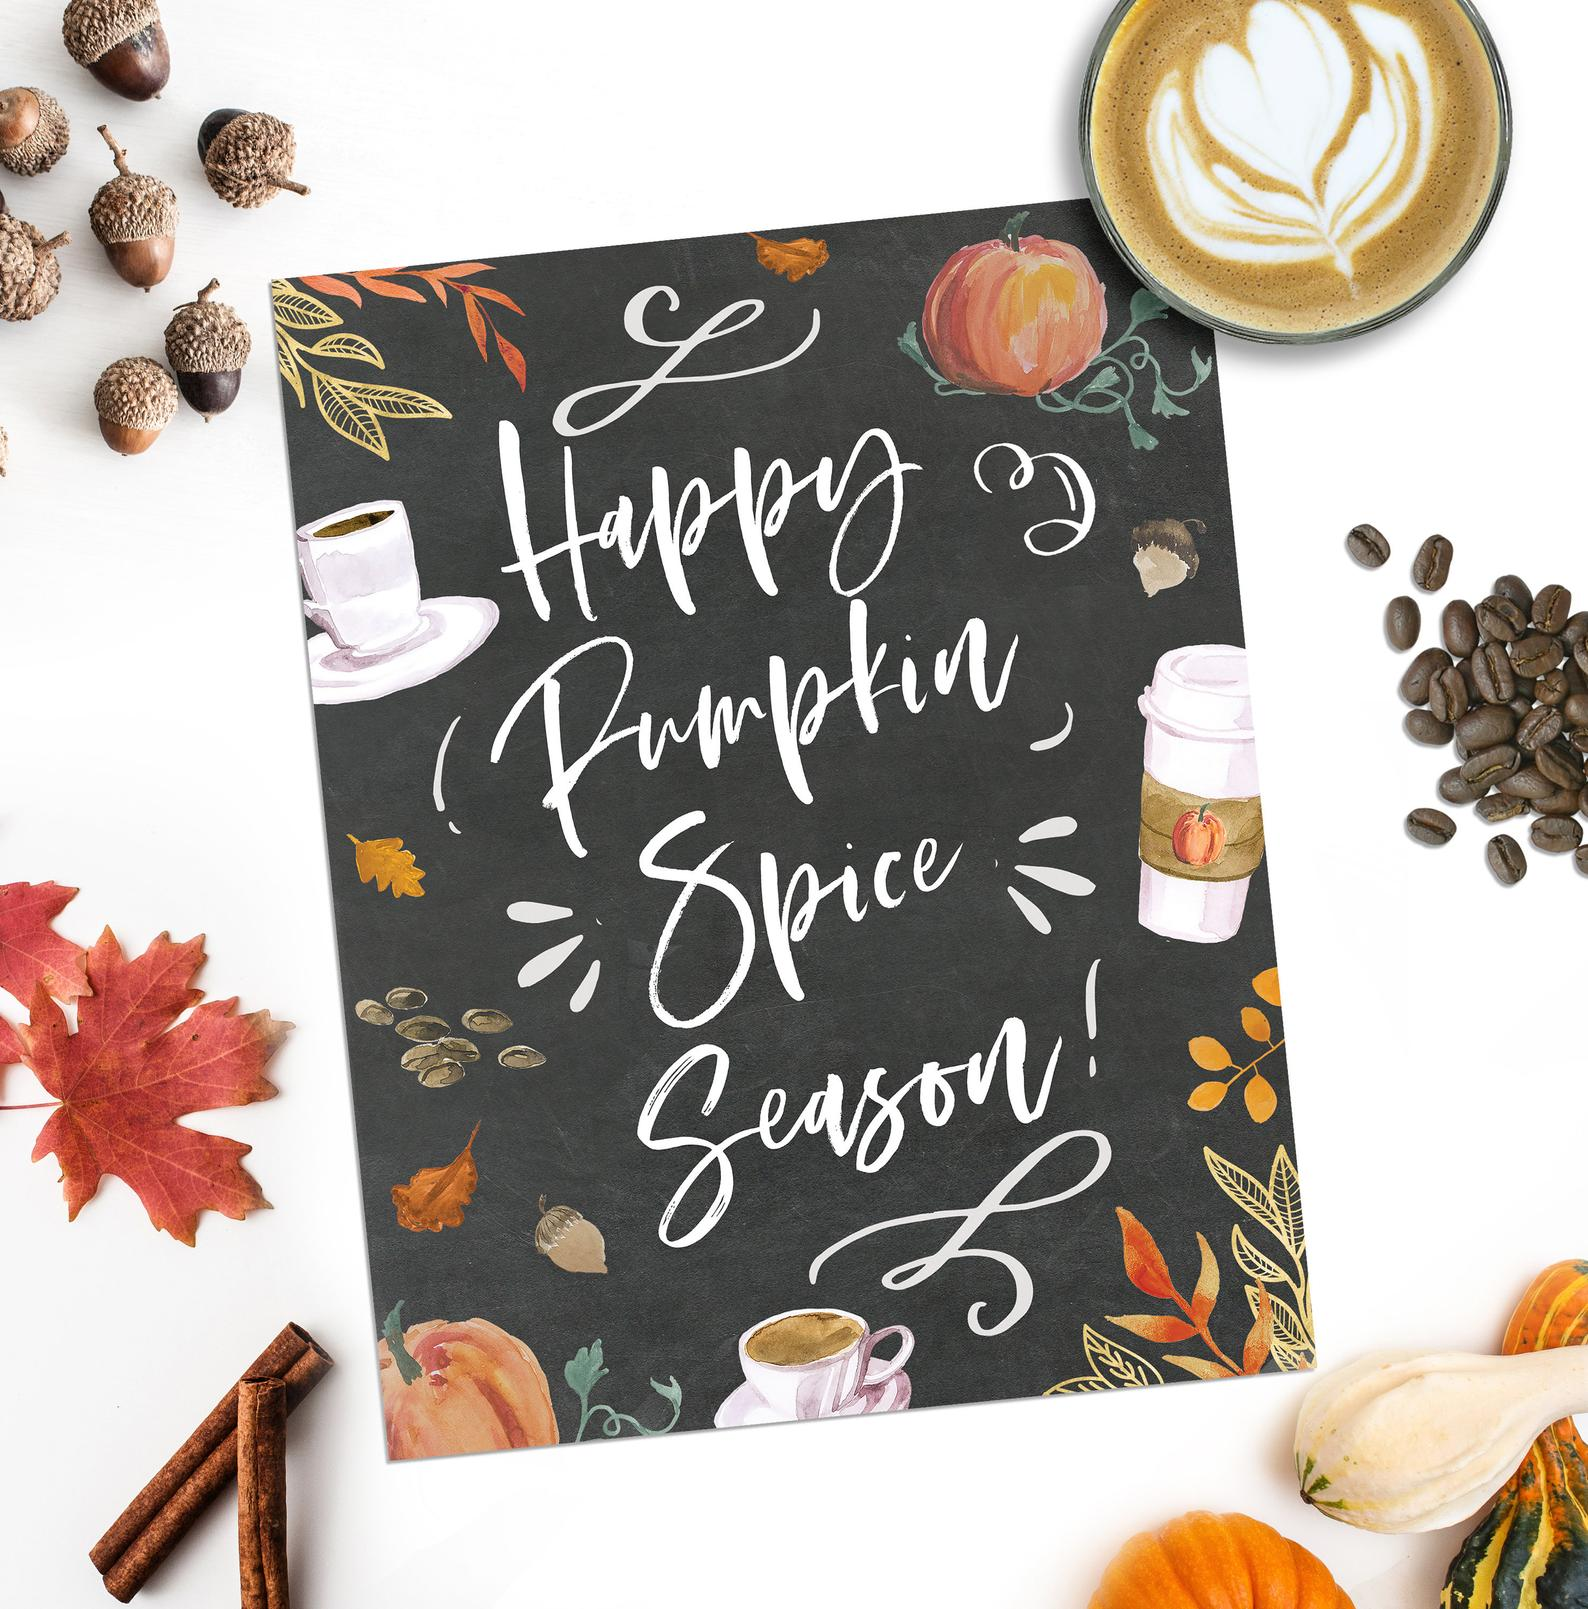 Happy Pumpkin Spice Season Printable Fall Home Decor By Adoren Studio